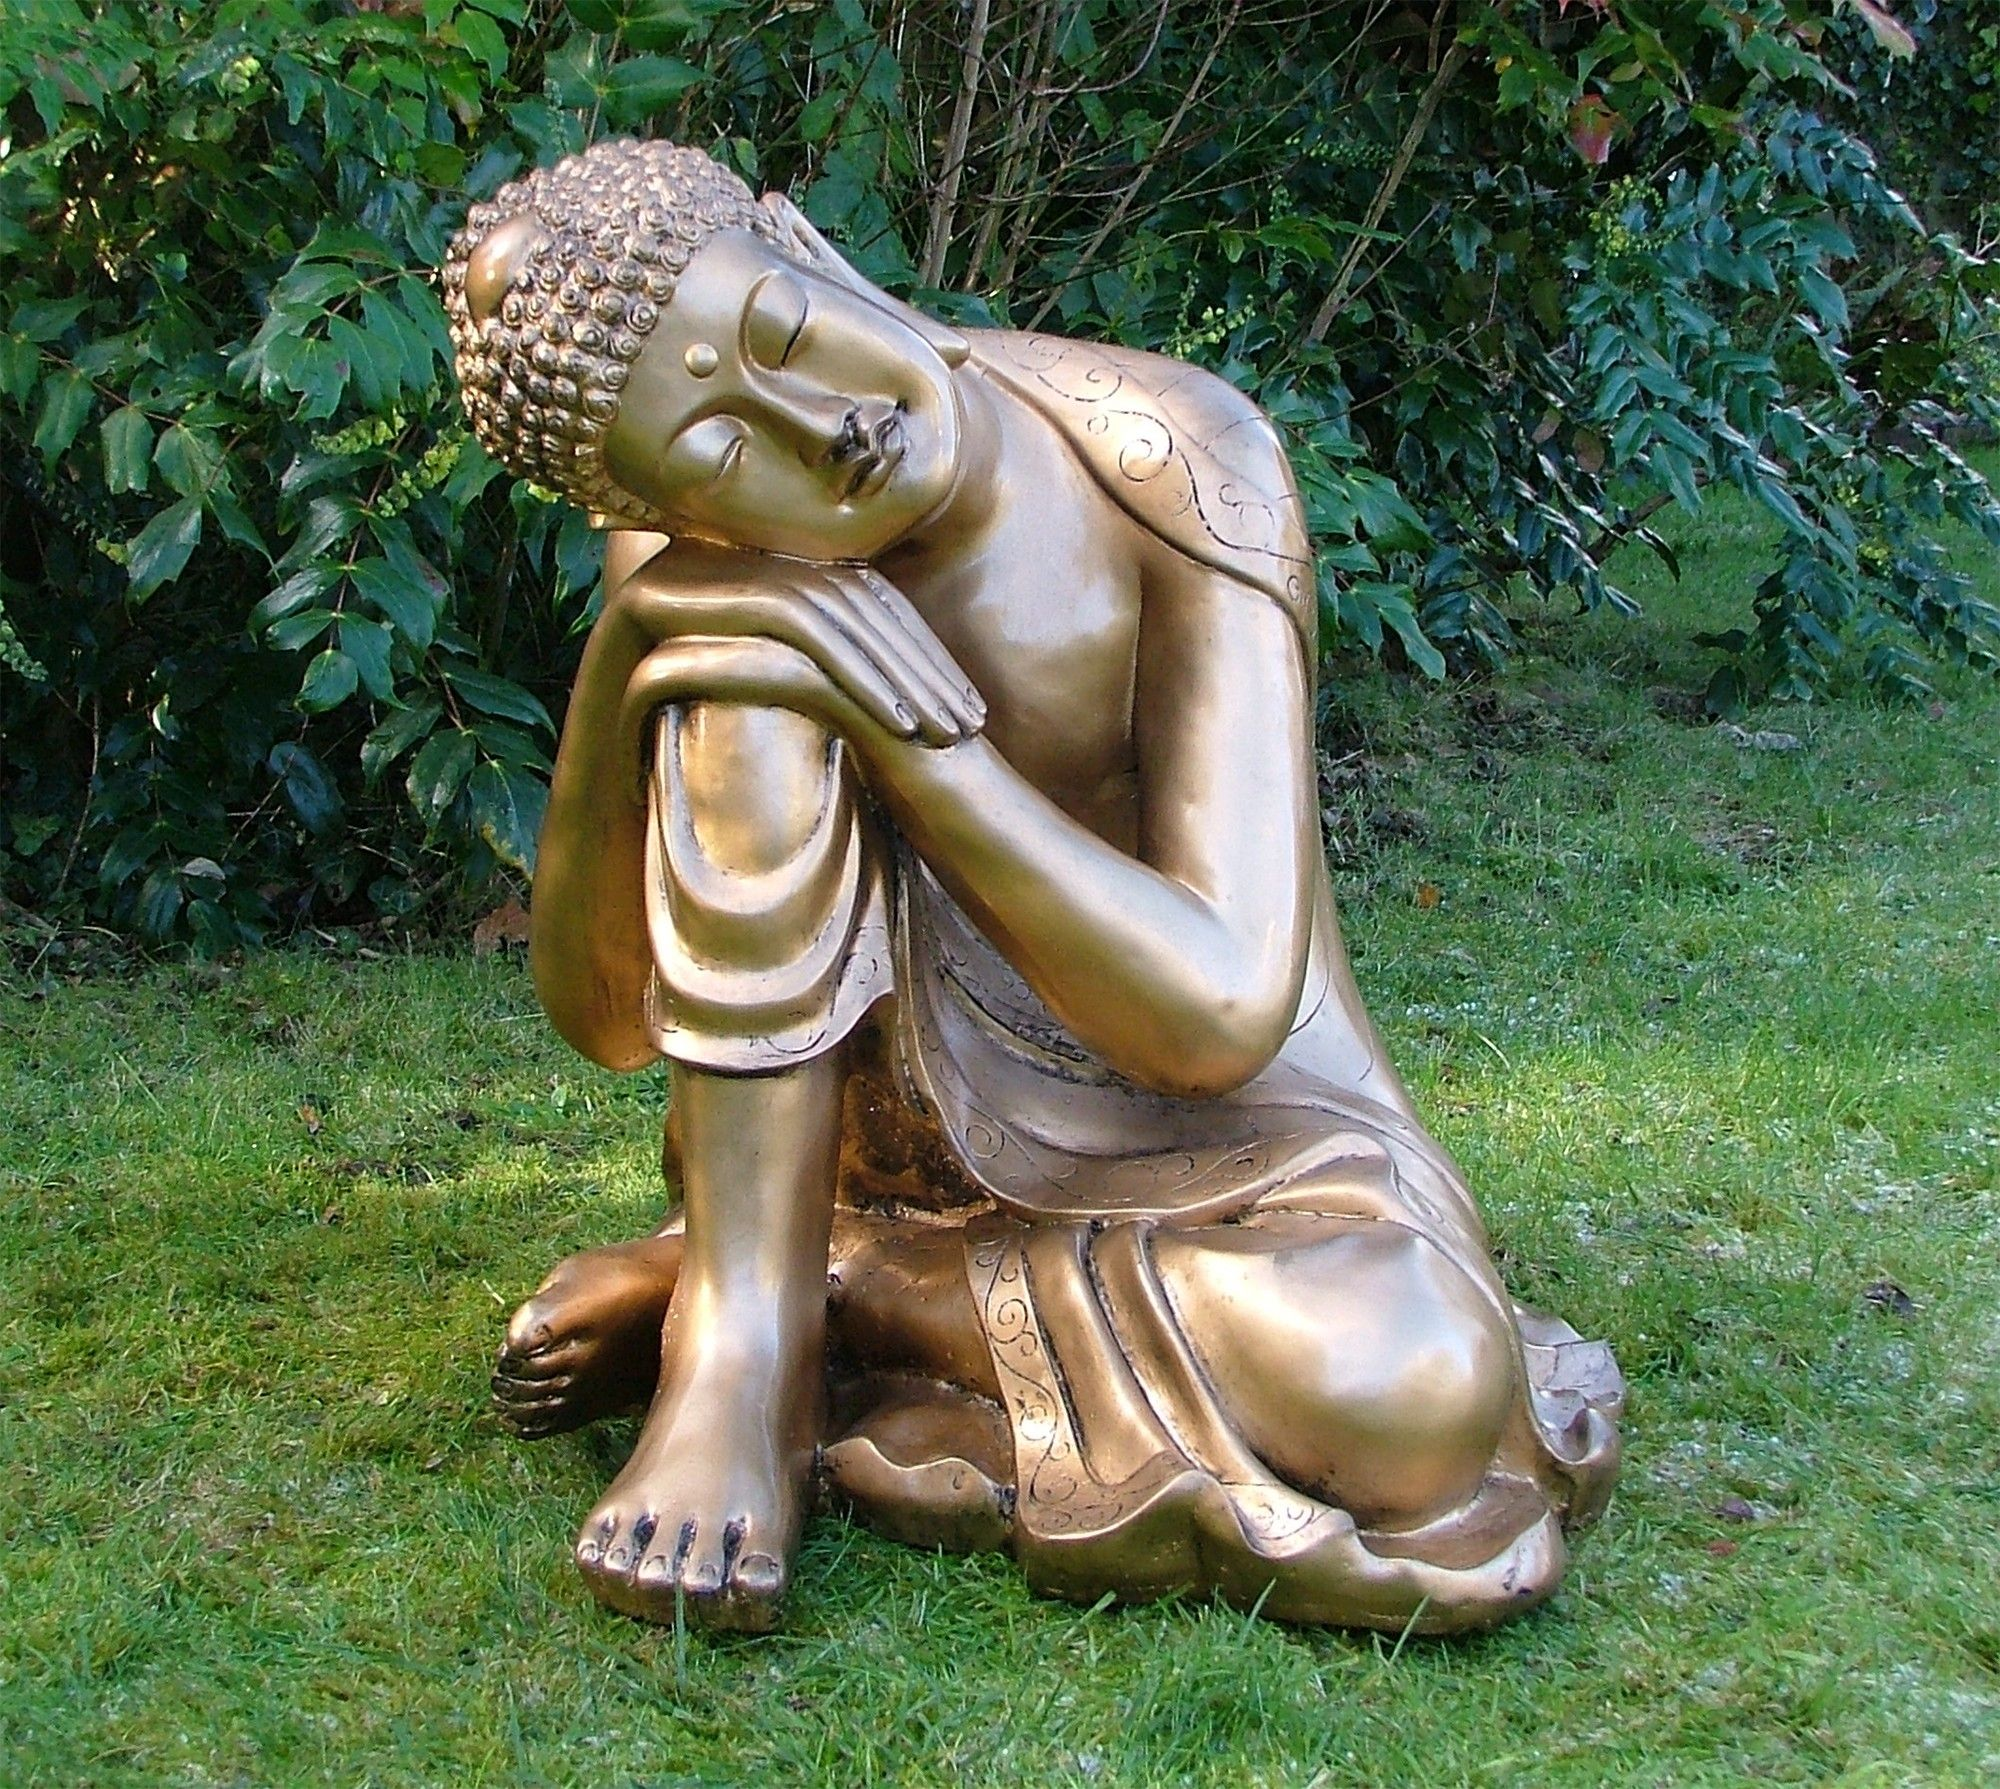 View The Gold Sleeping Deity Buddha Statue   Large Garden Ornaments. Or See  Our Full Range Of Exquisite Unique To Statues U0026 Sculptures Online.